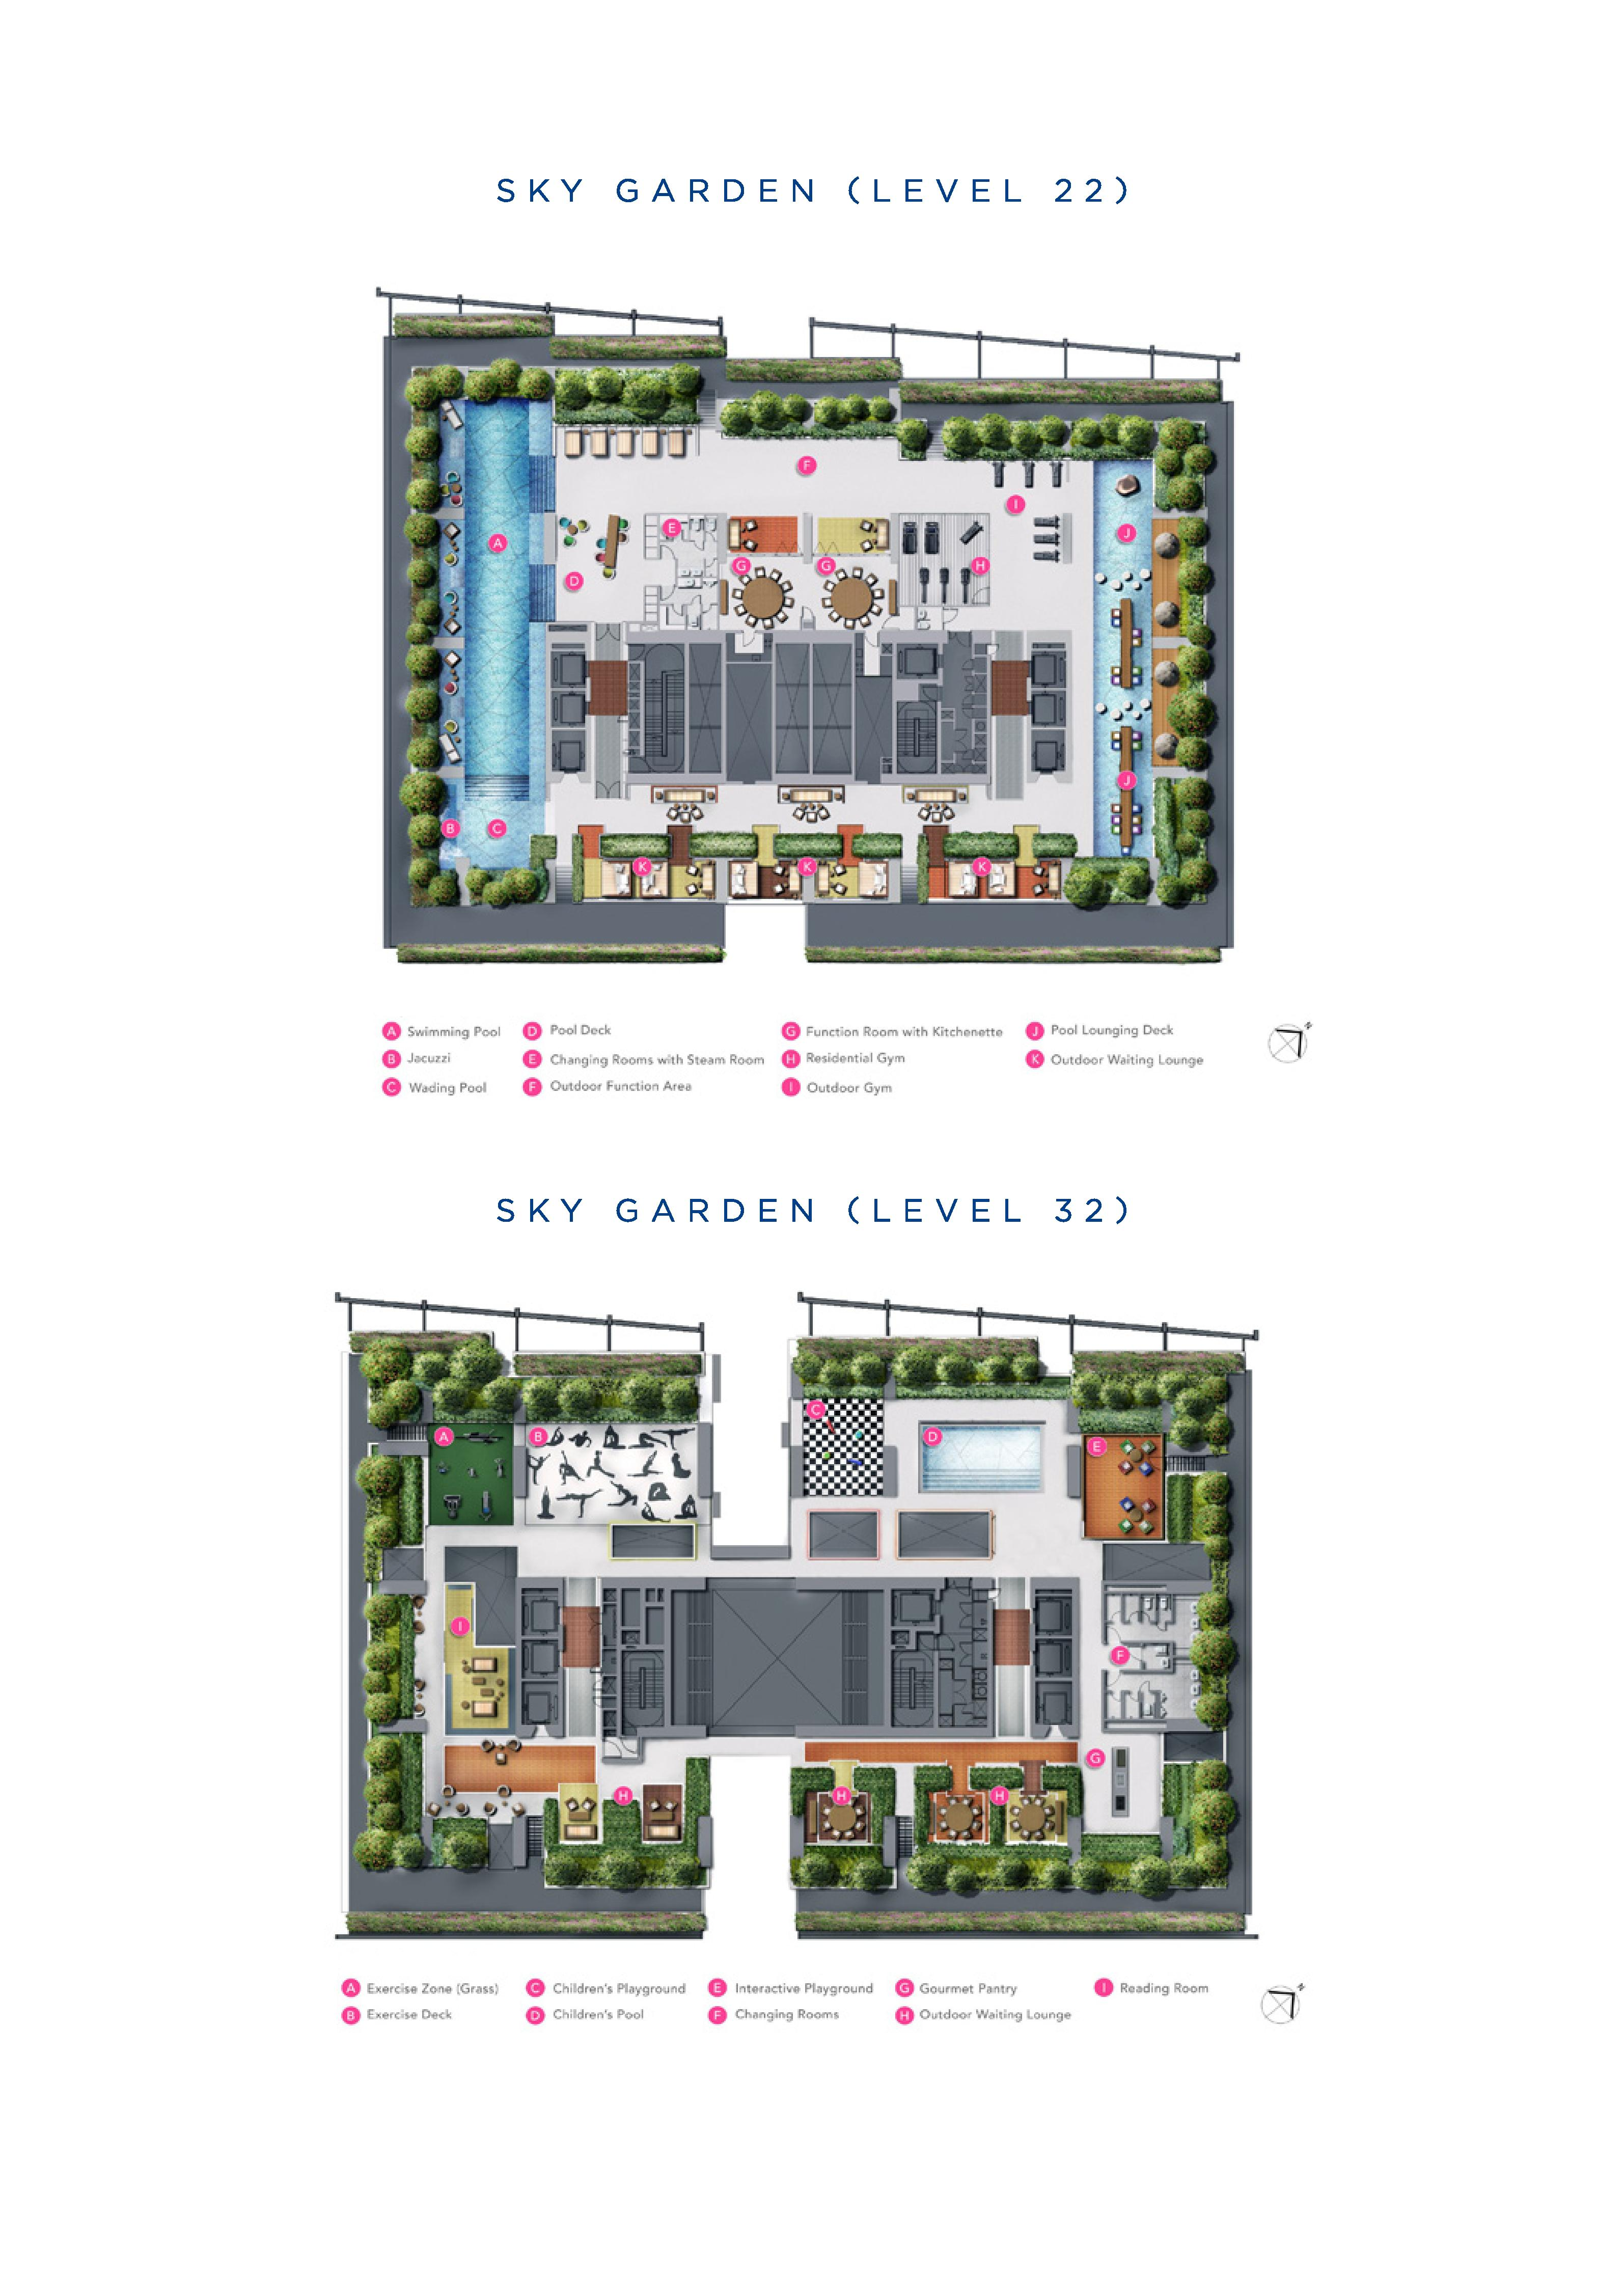 South Beach Residences Level 22 & 32 Site Map